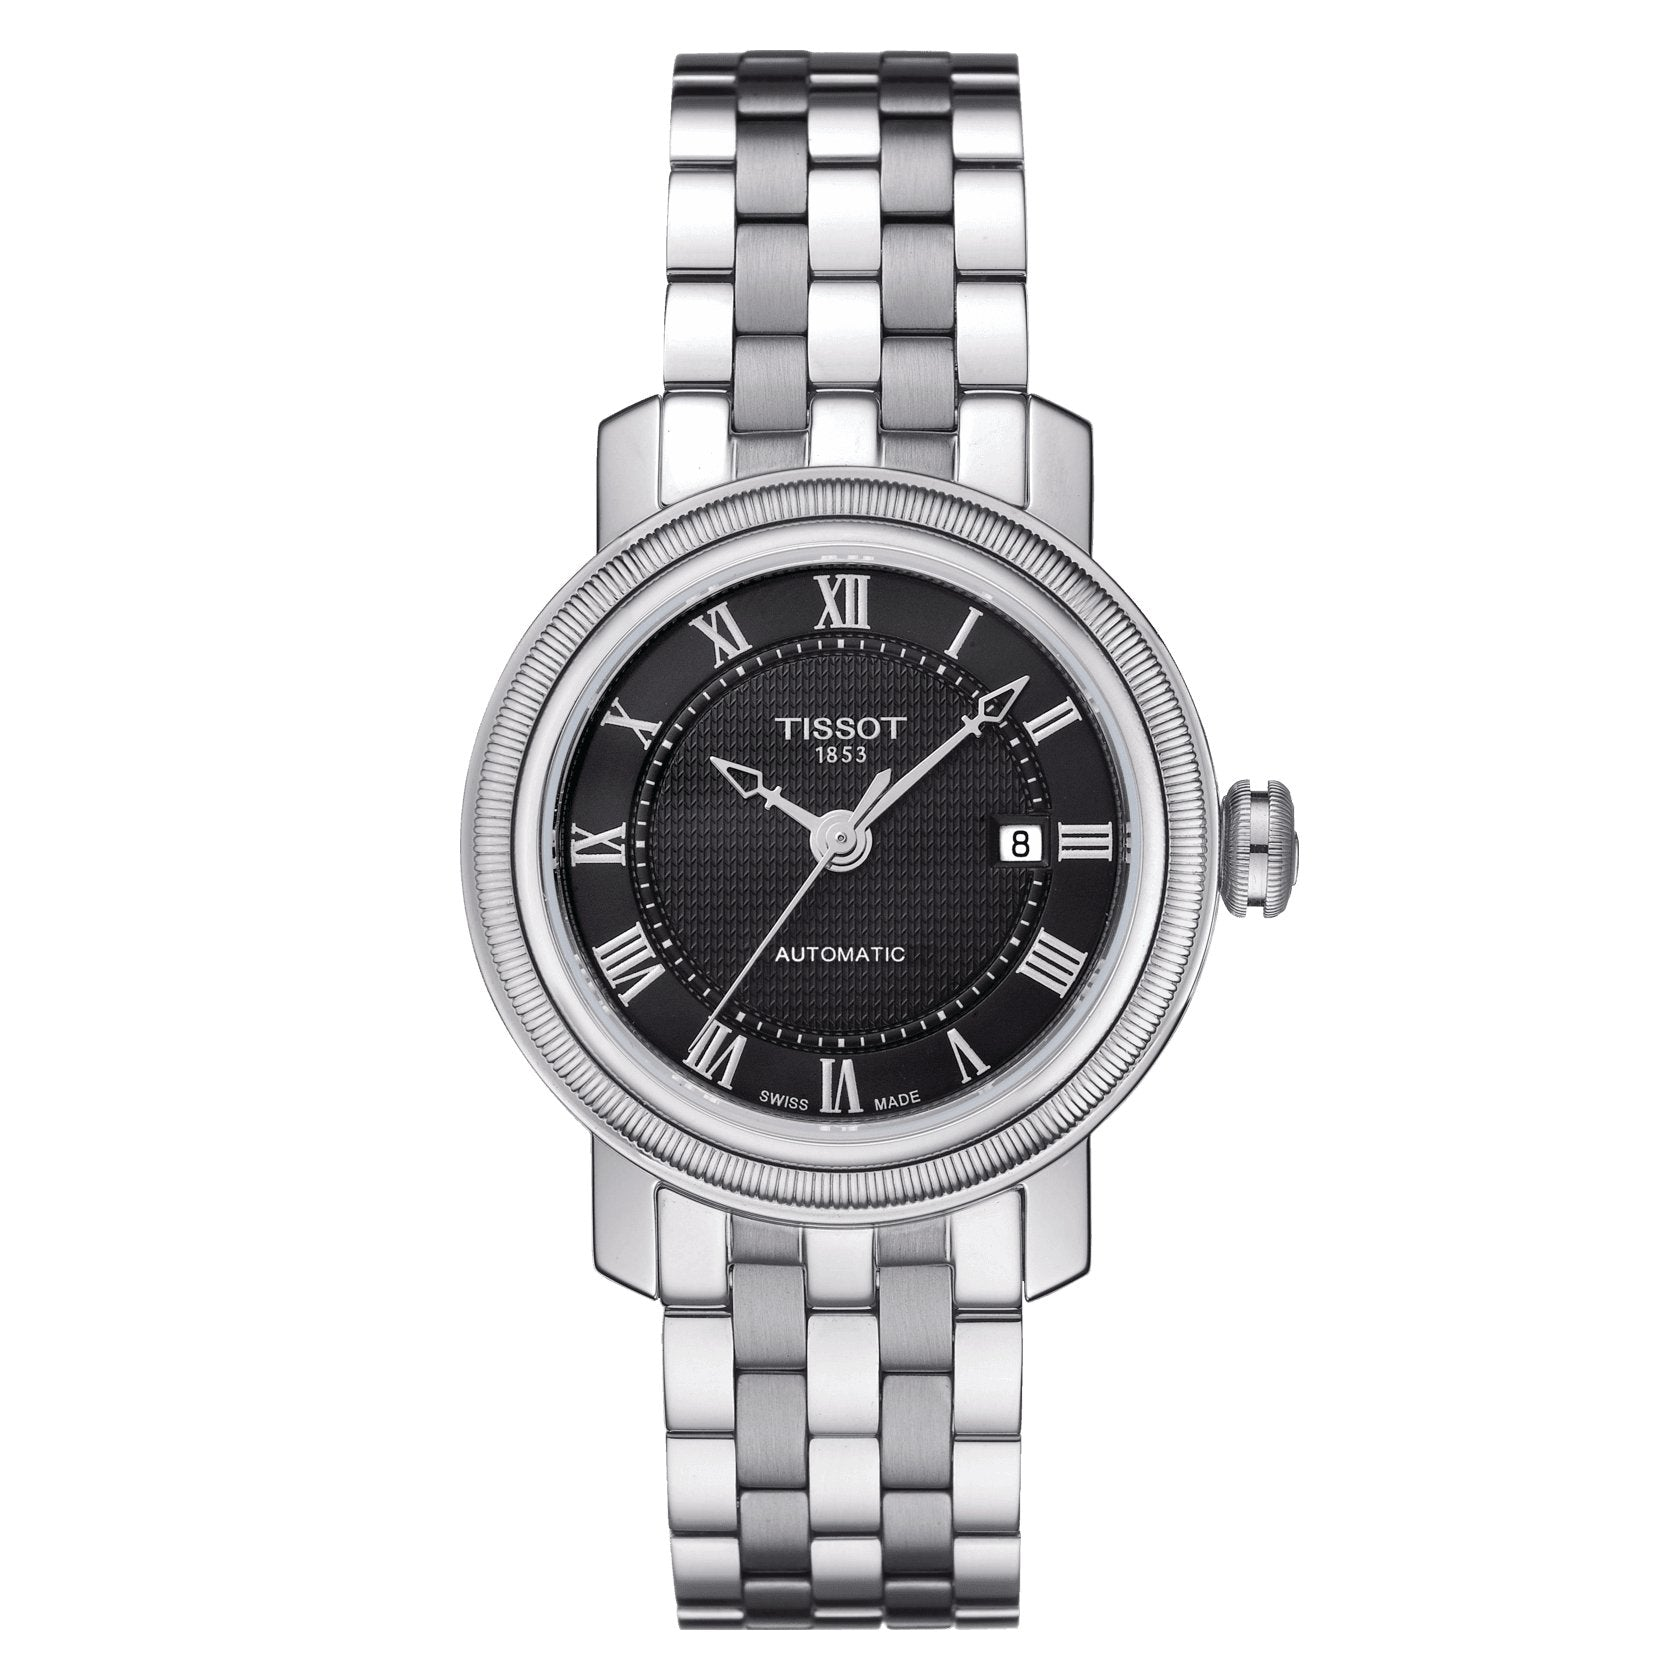 Tissot T-Classic Bridgeport Date Black - Watches & Crystals